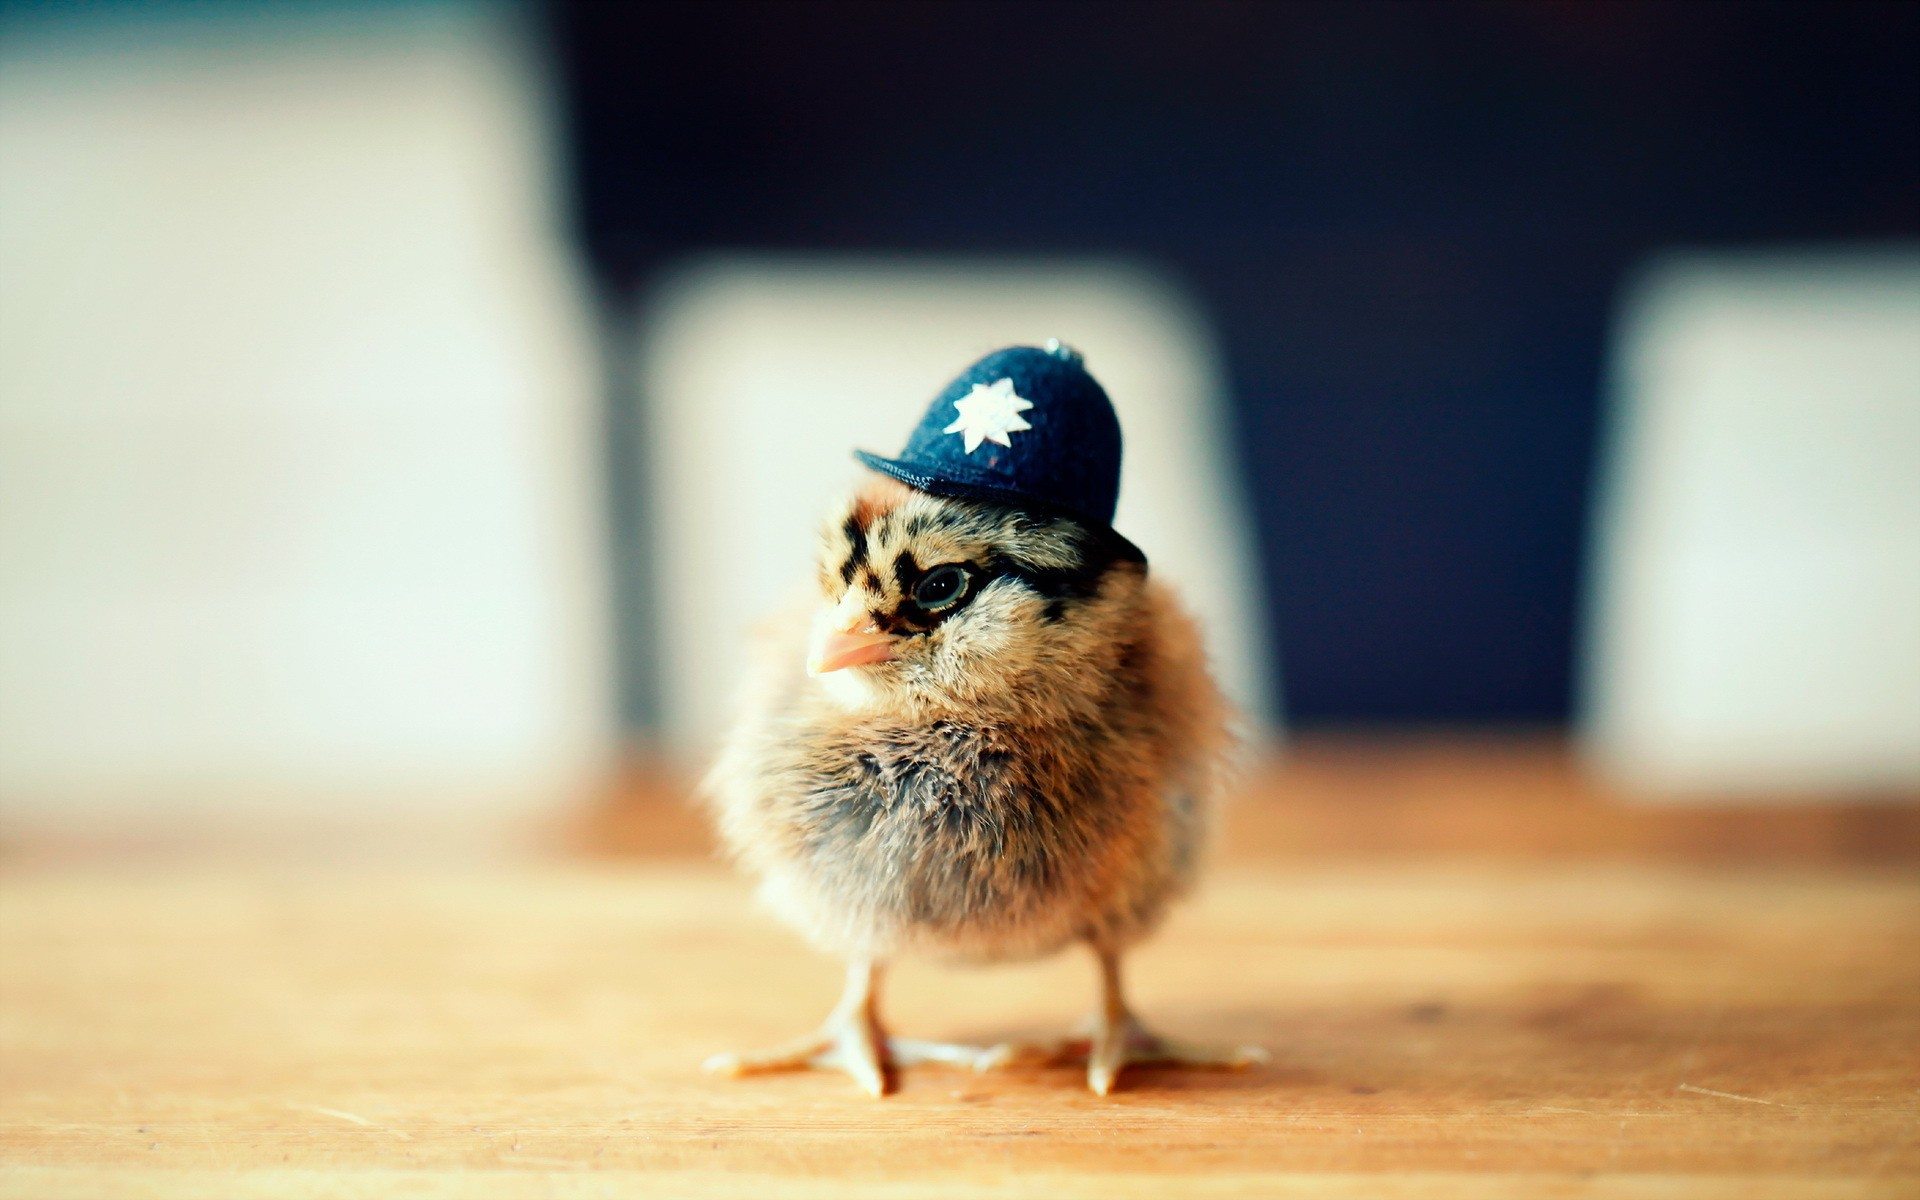 Funny Chicken Police: Police Chick HD Wallpaper